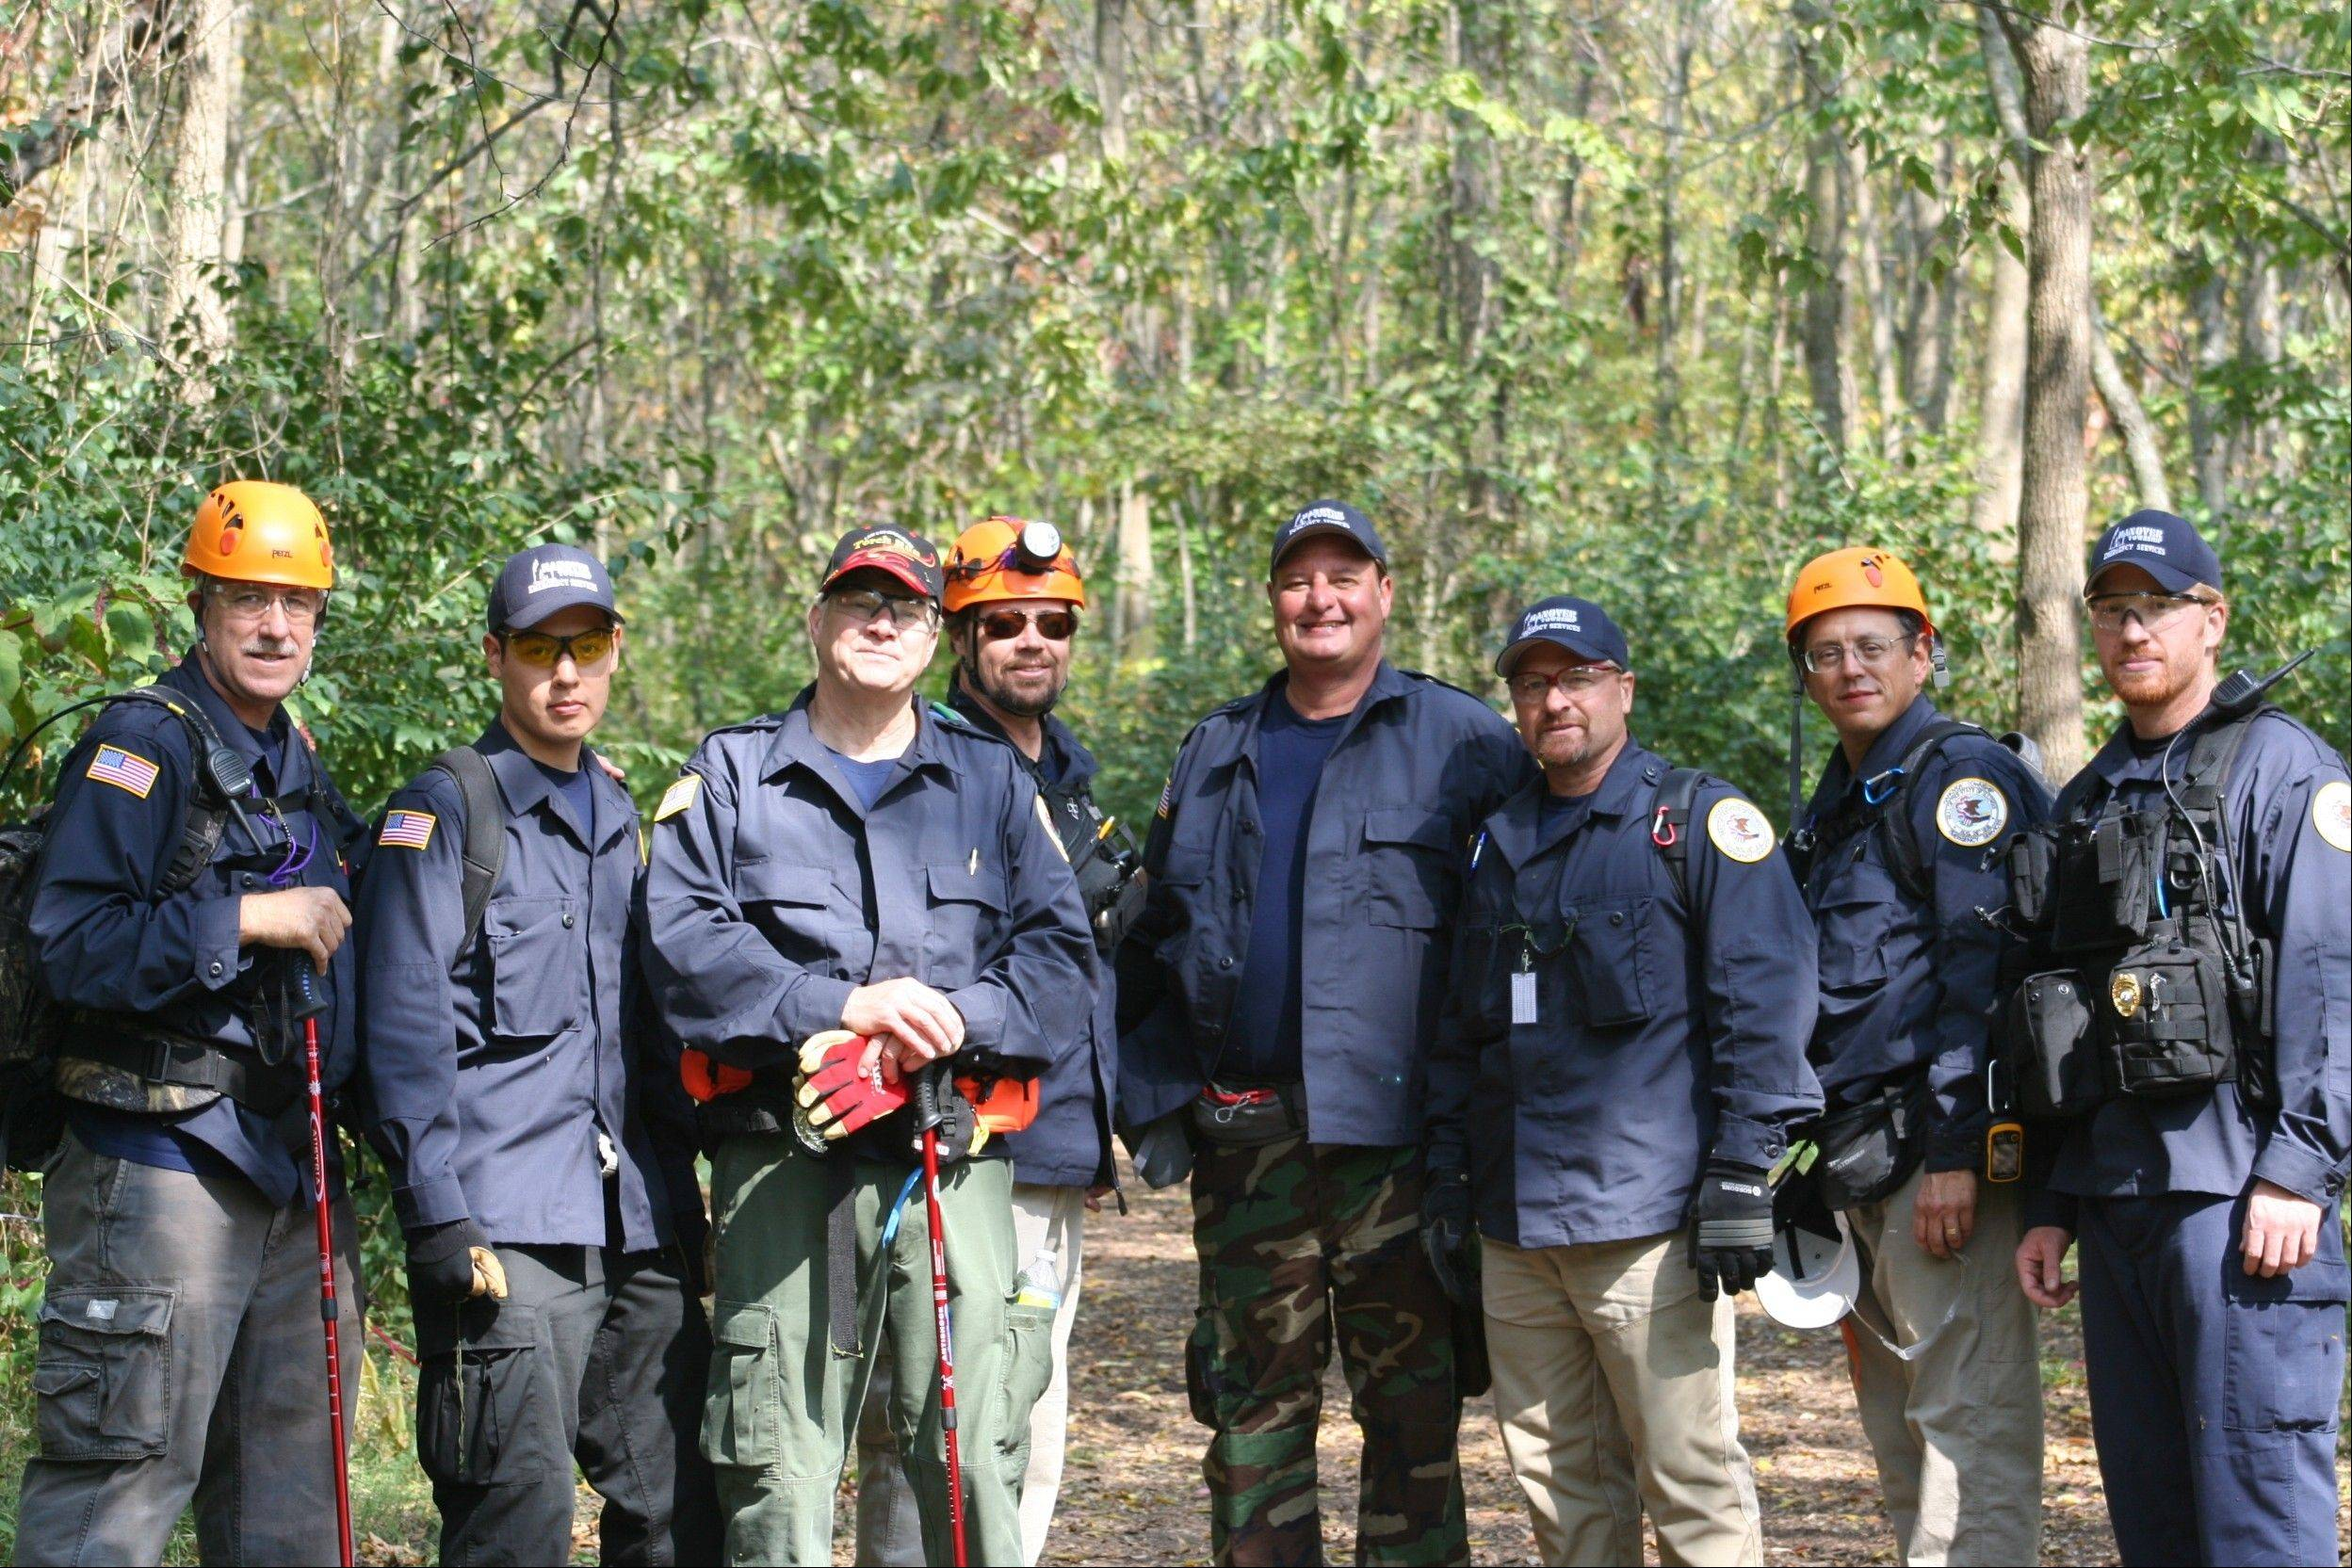 The Hanover Township Search and Rescue team following completion of their validation full search exercise.